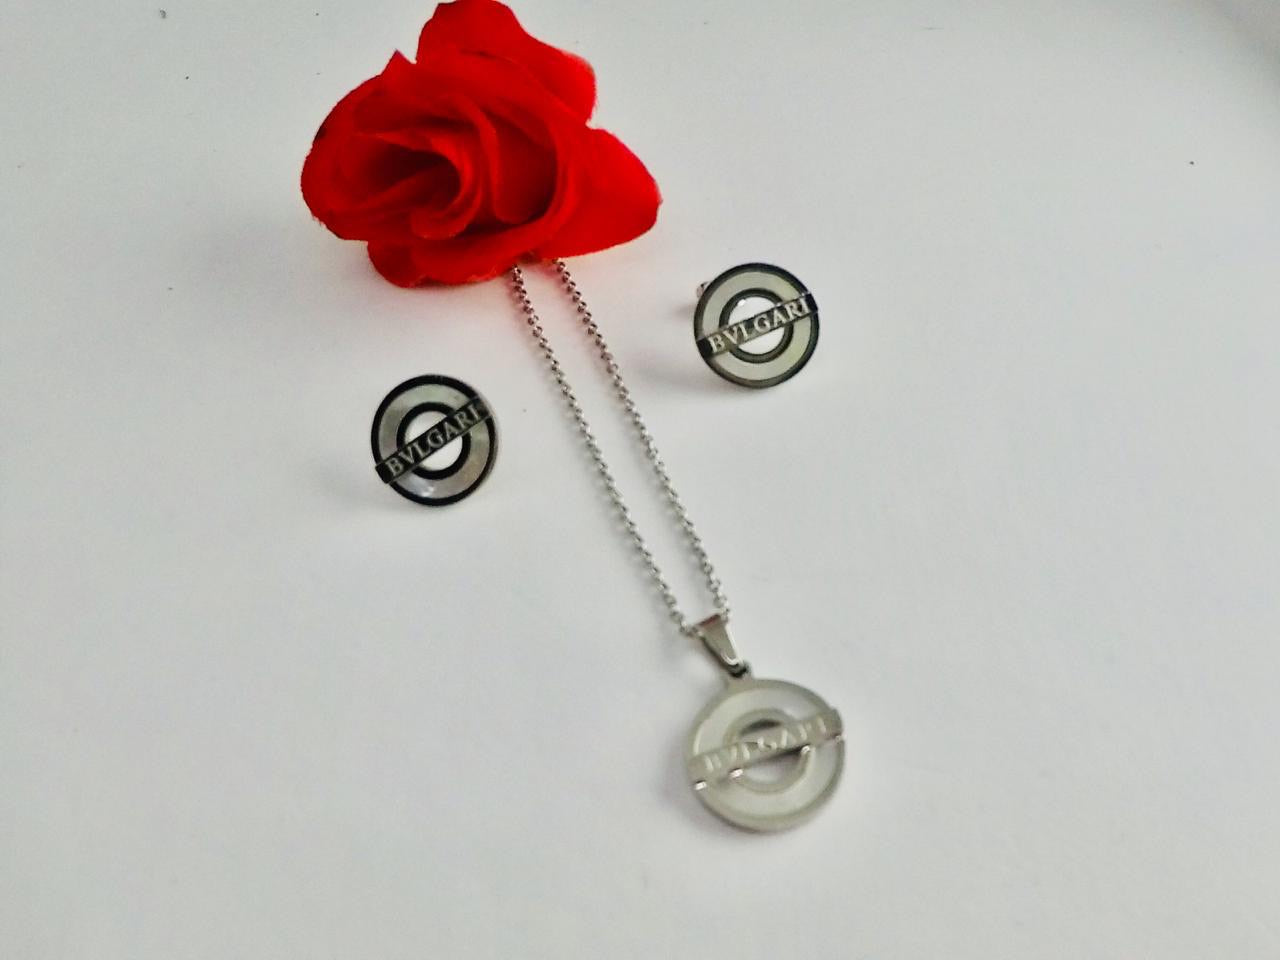 Bvlgari Logo Round Pendant Necklace with earrings